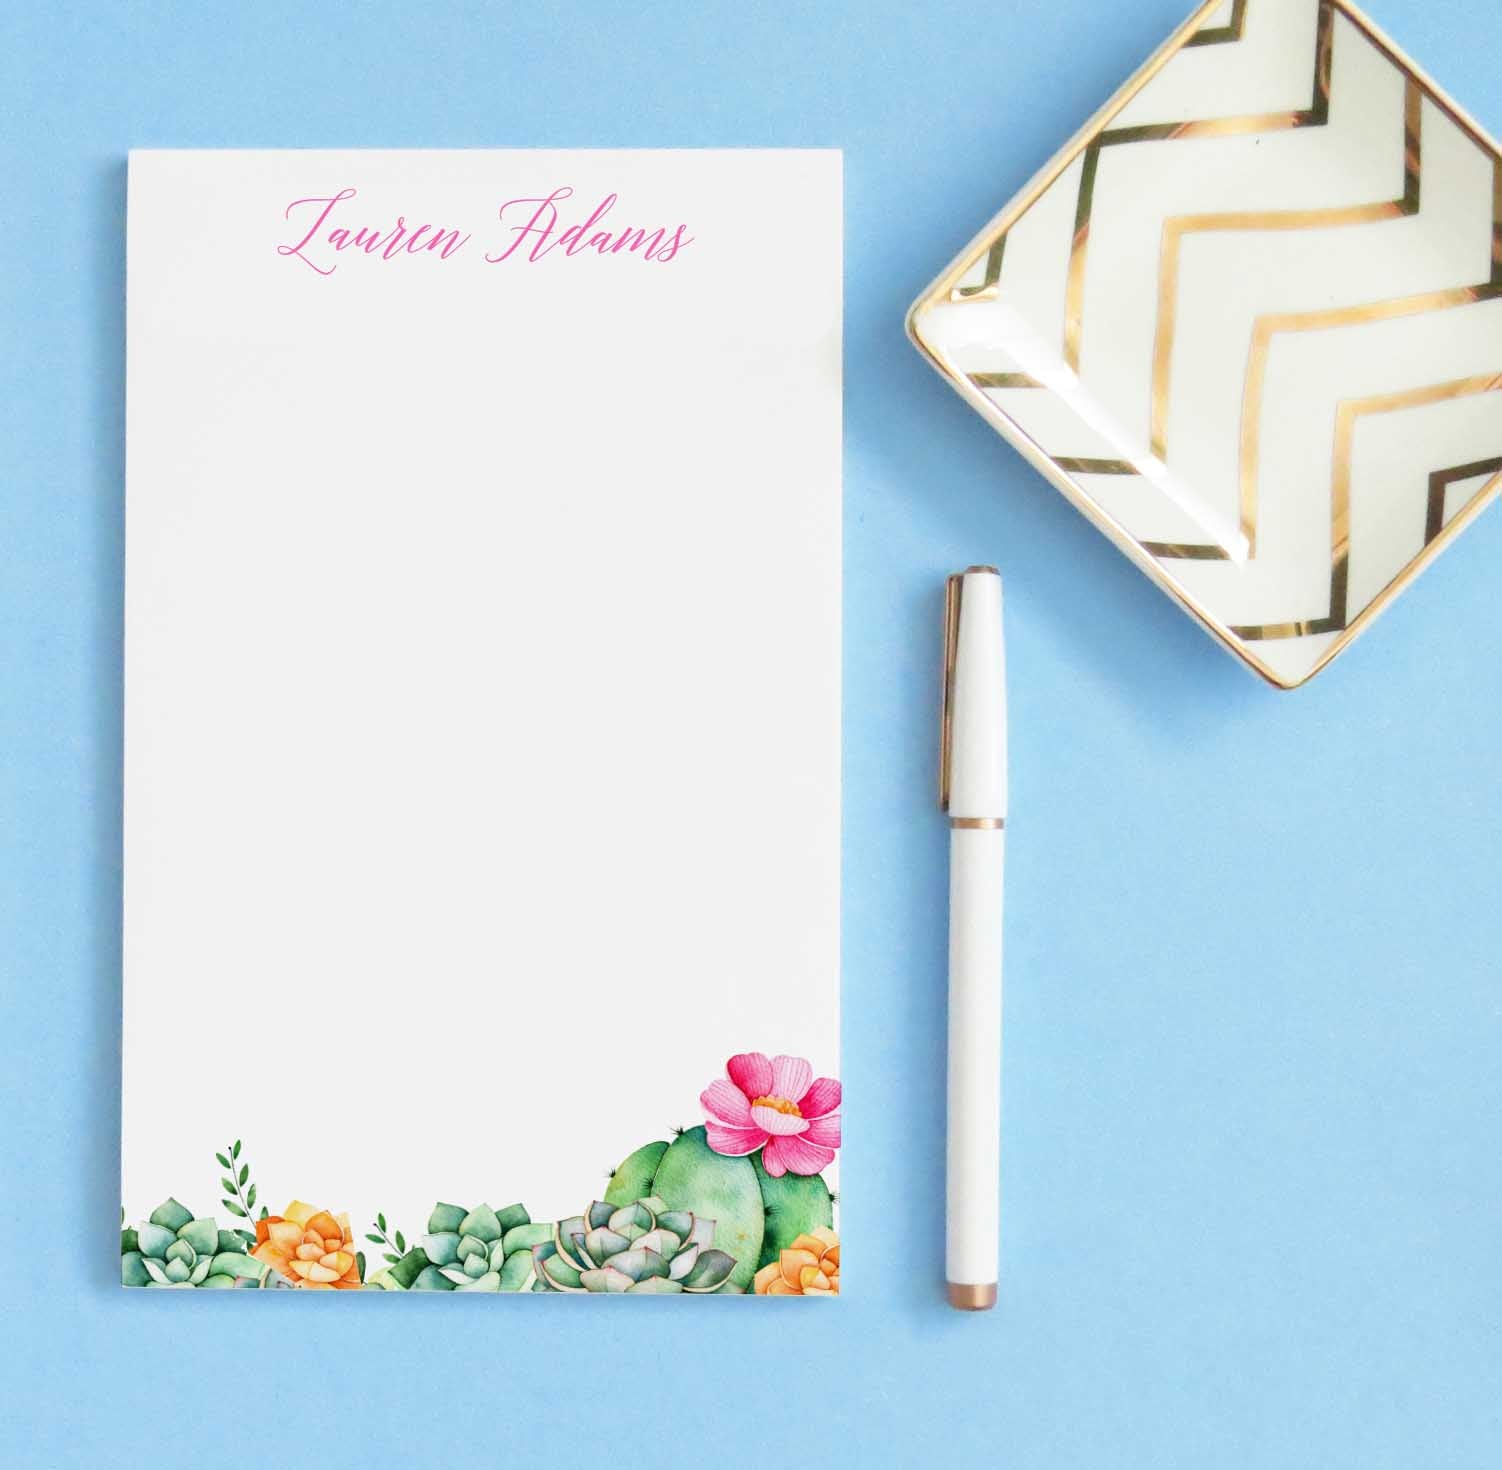 NP174 floral cactus personalized note paper succulents succulent stationery